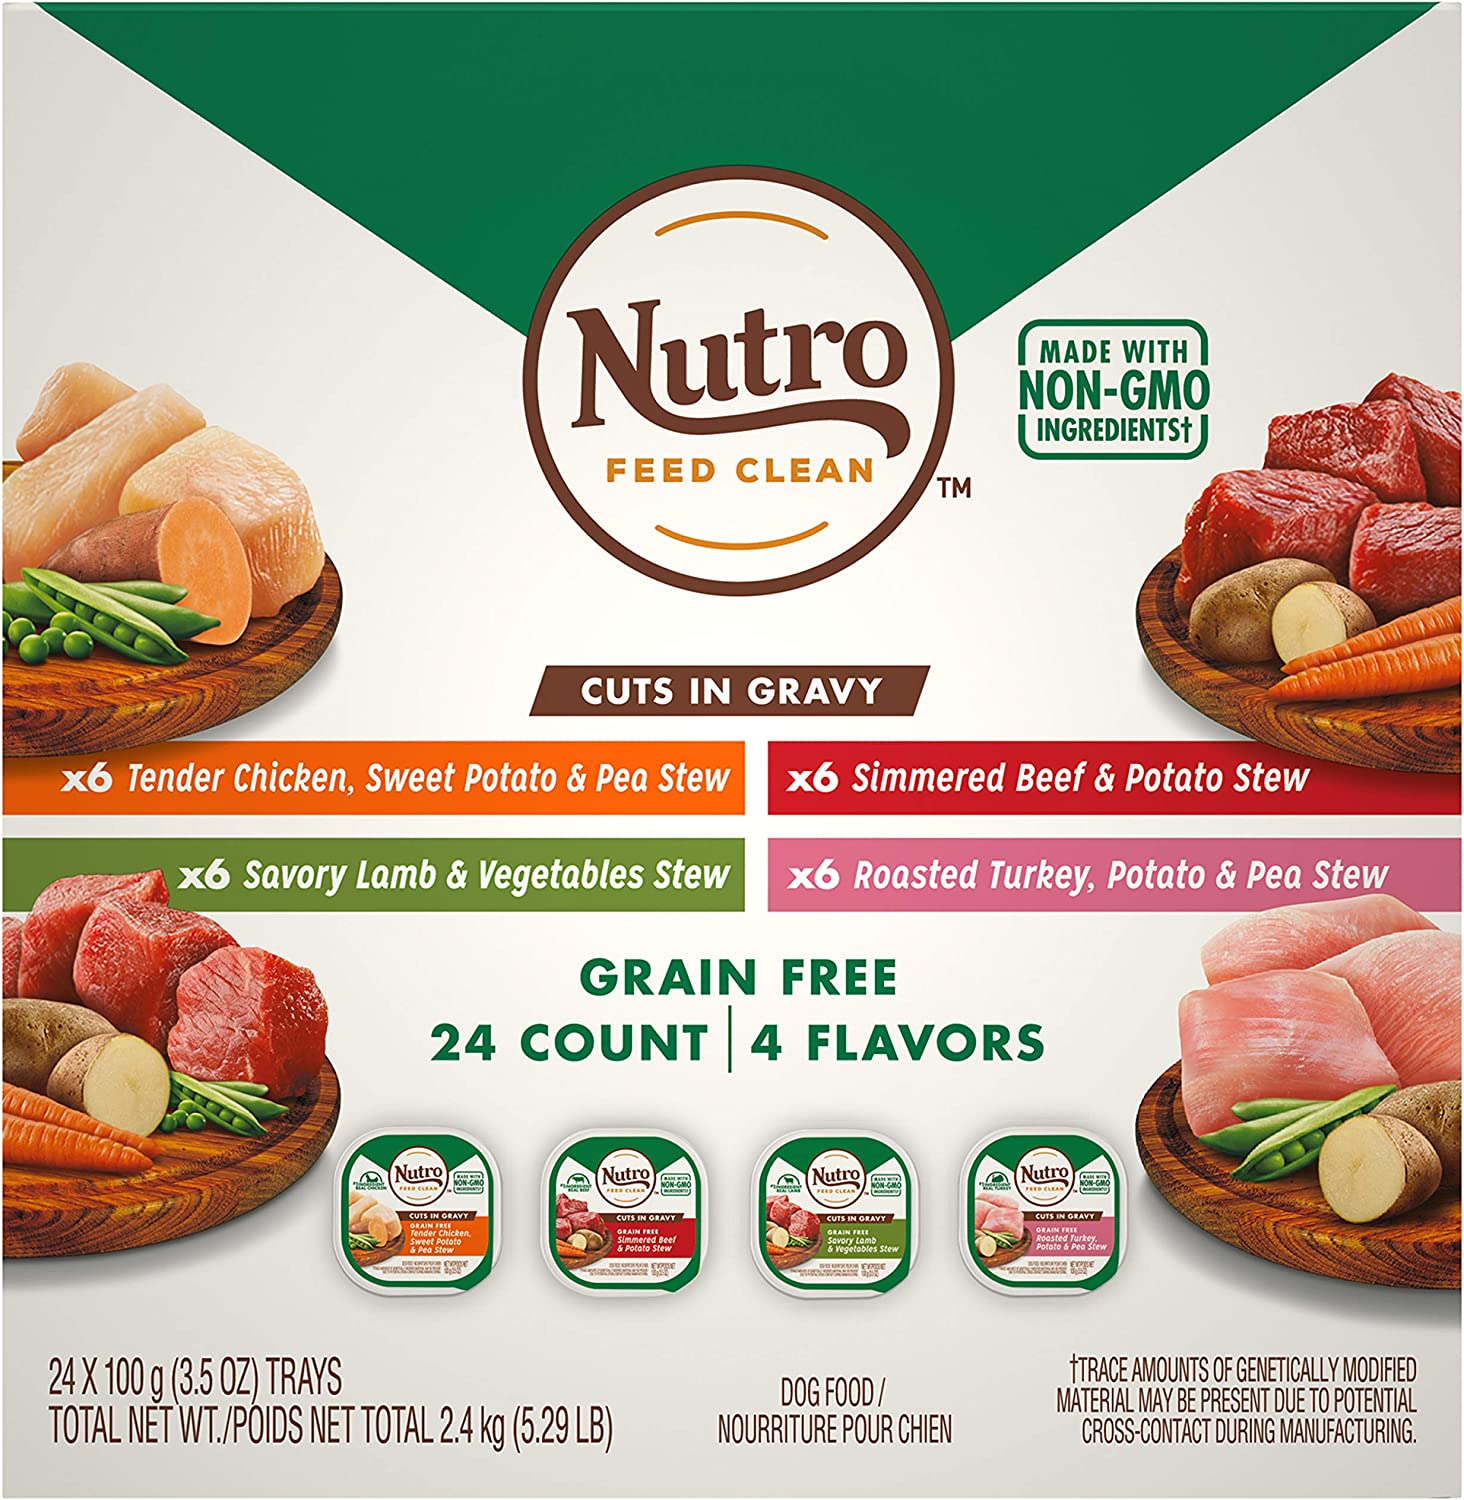 Nutro Grain Free Adult Wet Dog Food Cuts in Gravy Variety Packs